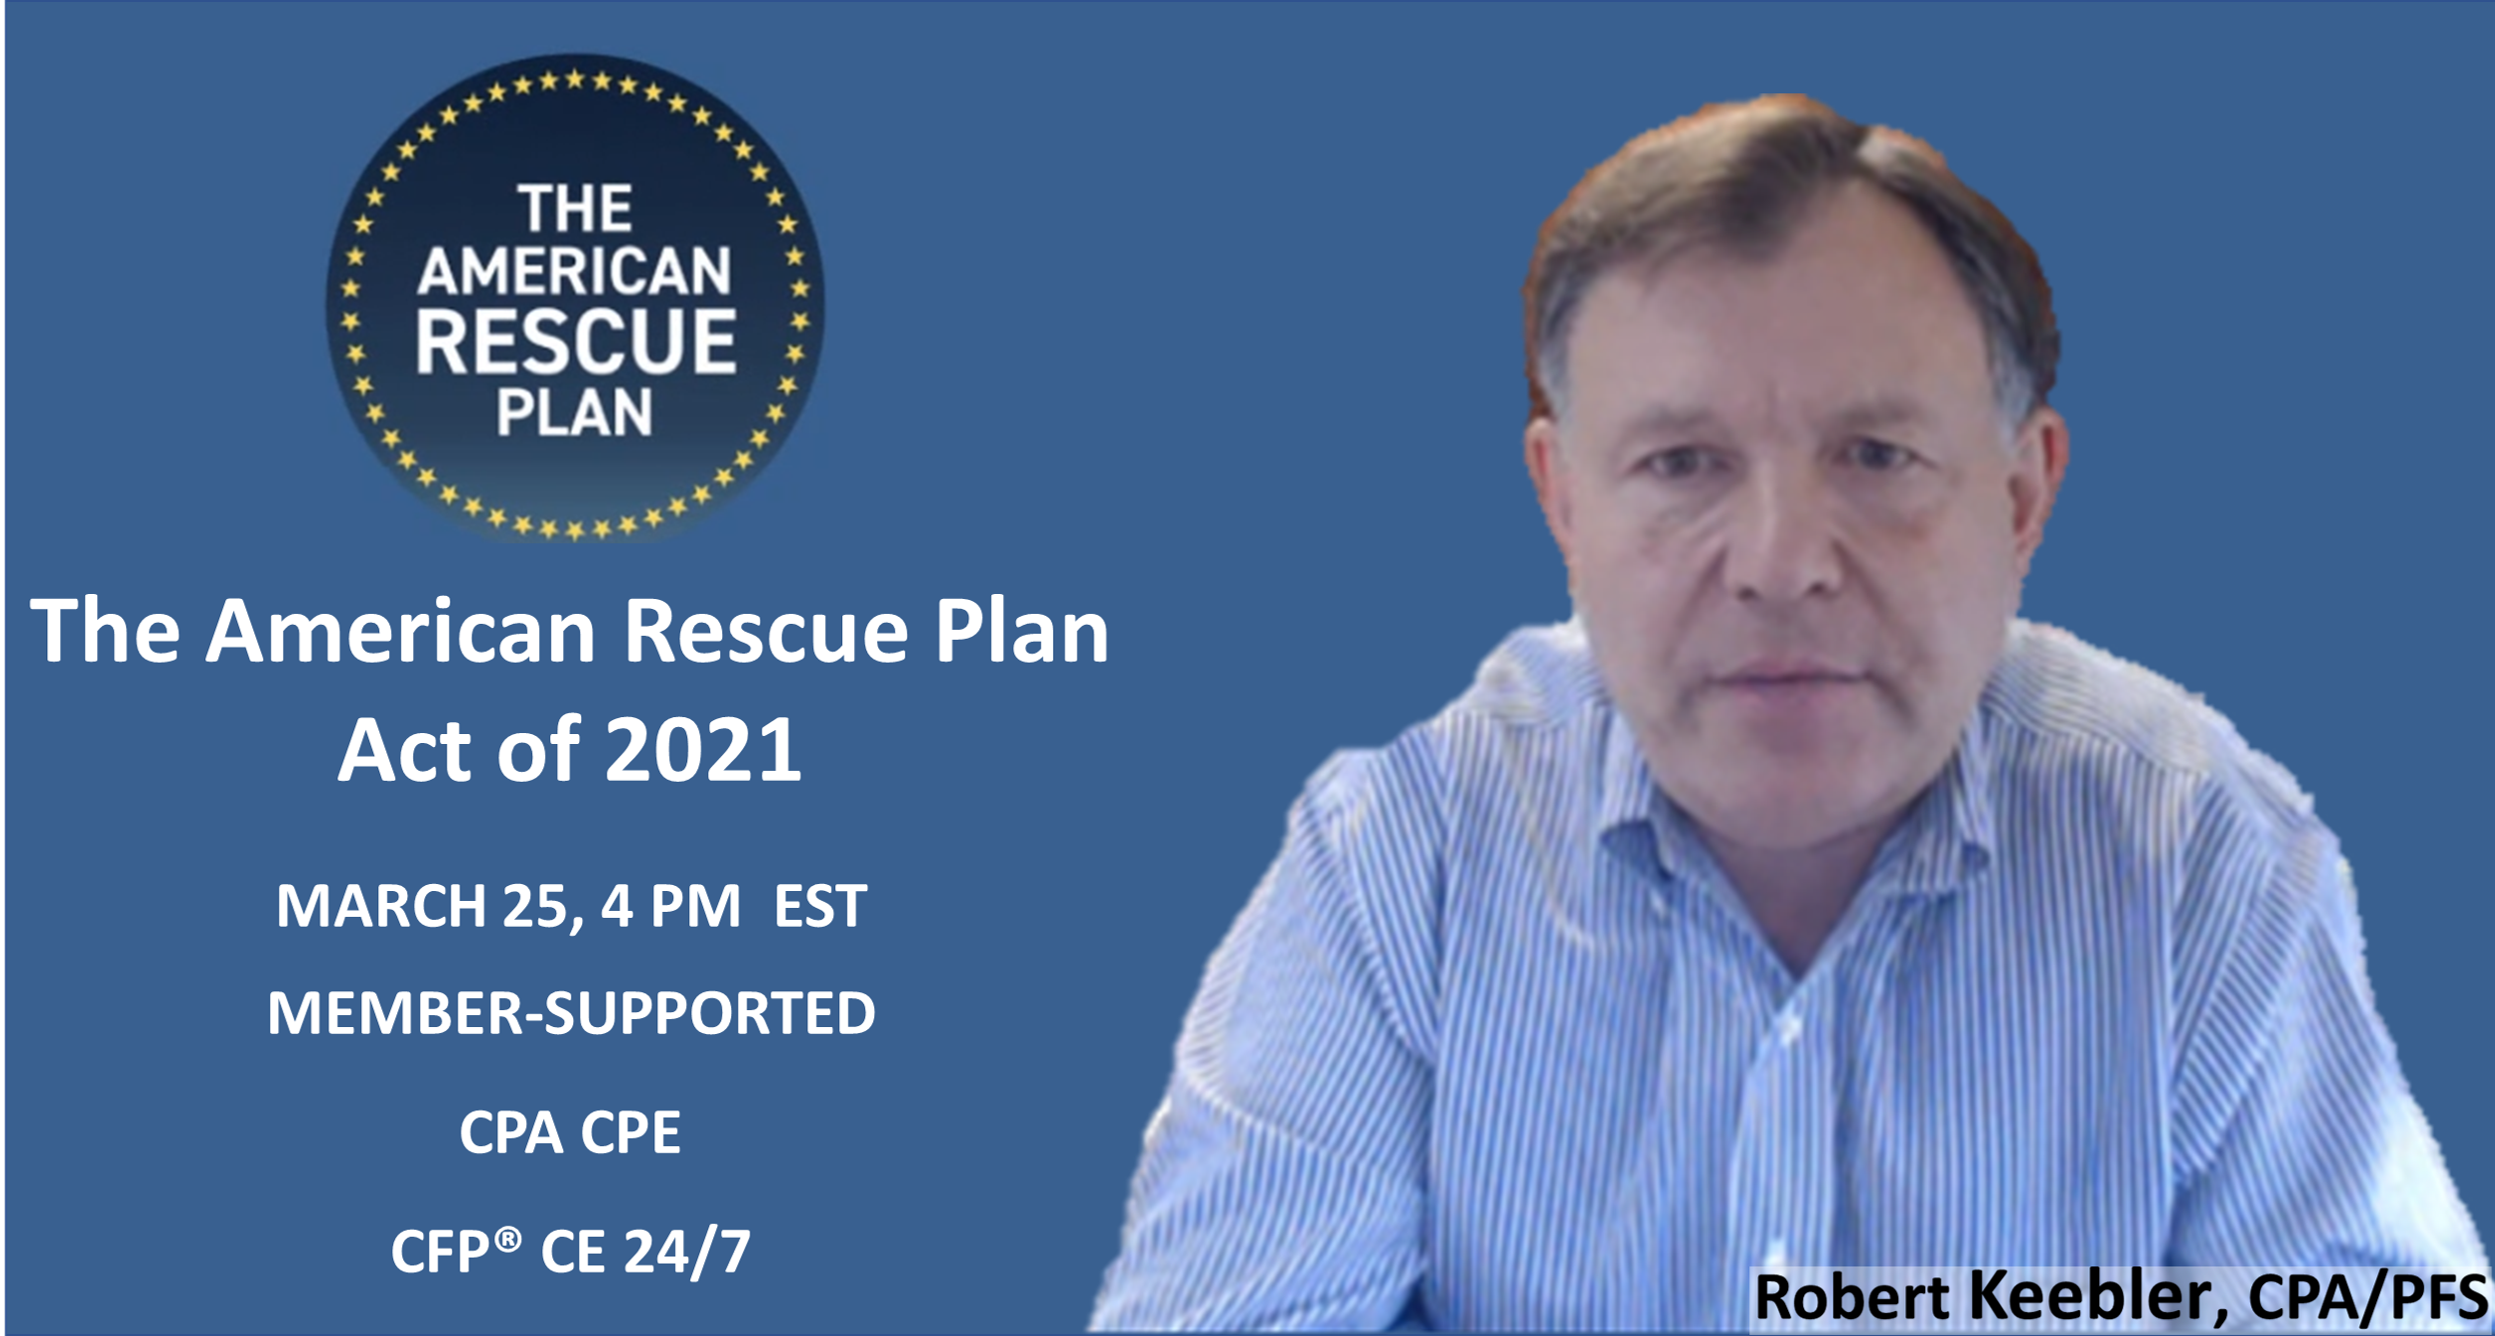 The American Rescue Plan Act Of 2021: What Advisors Need To Know